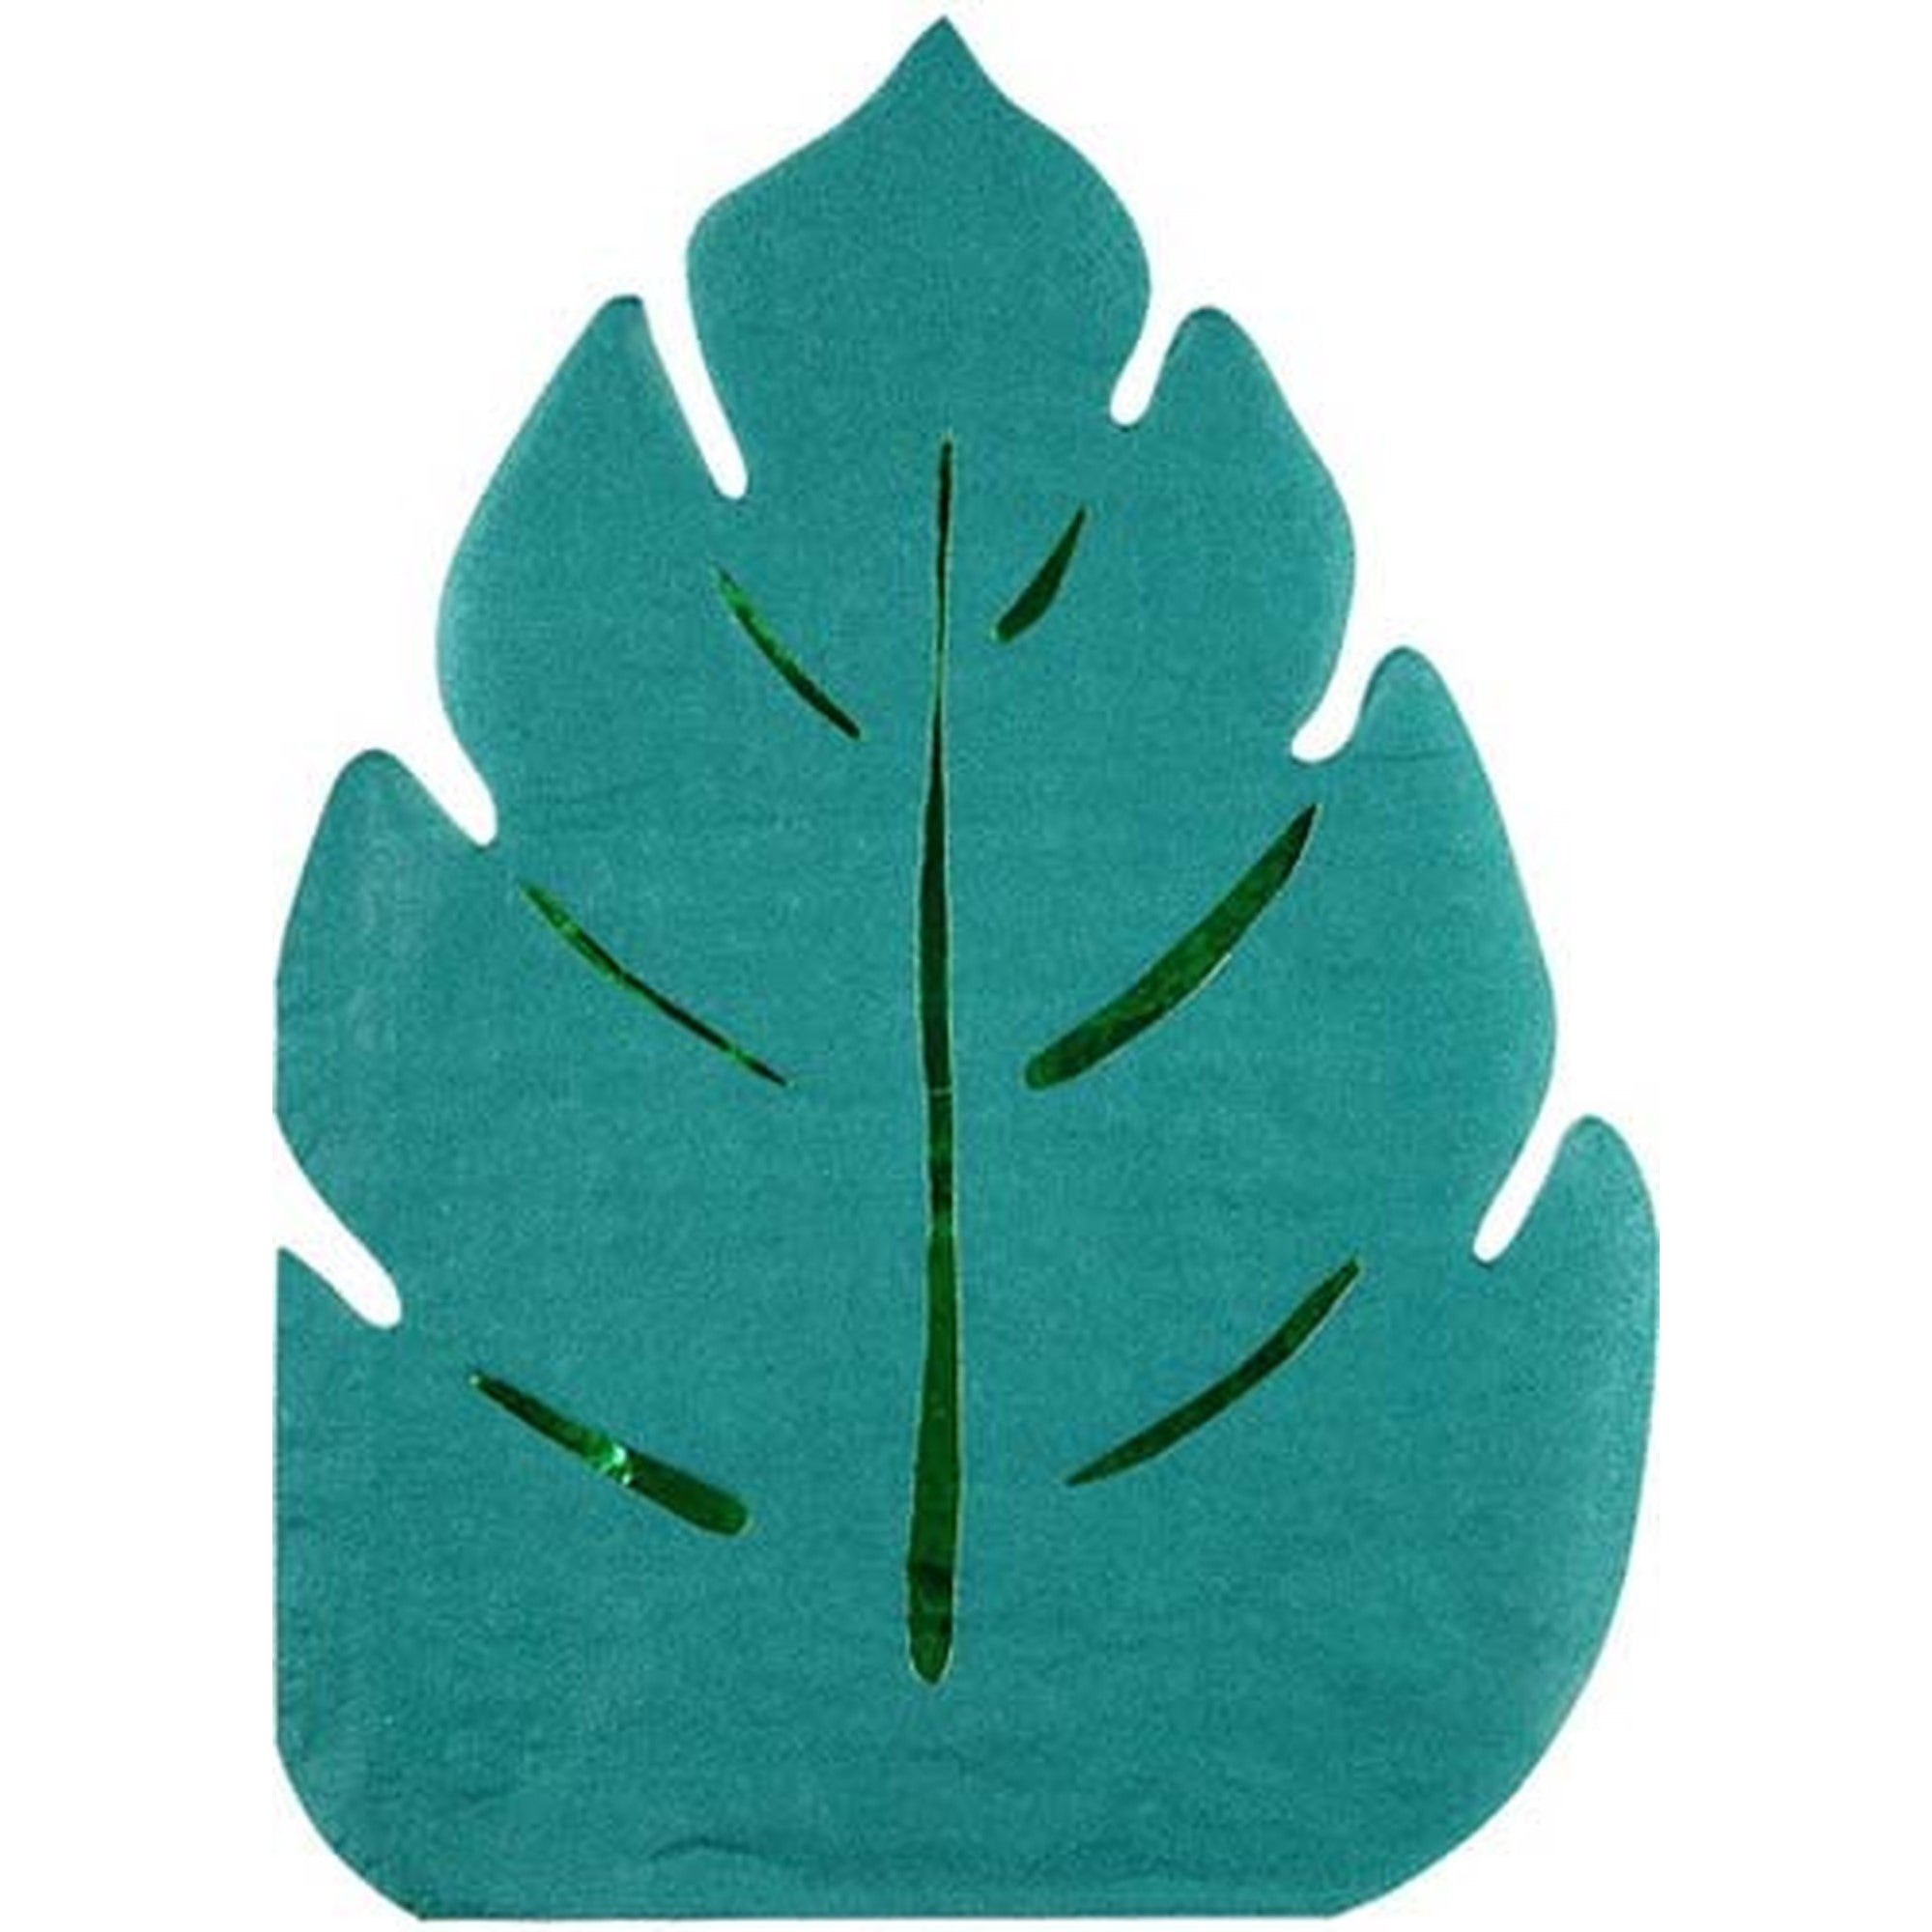 Meri Meri Leaf Paper Napkins - Large, MM-Meri Meri UK, Putti Fine Furnishings